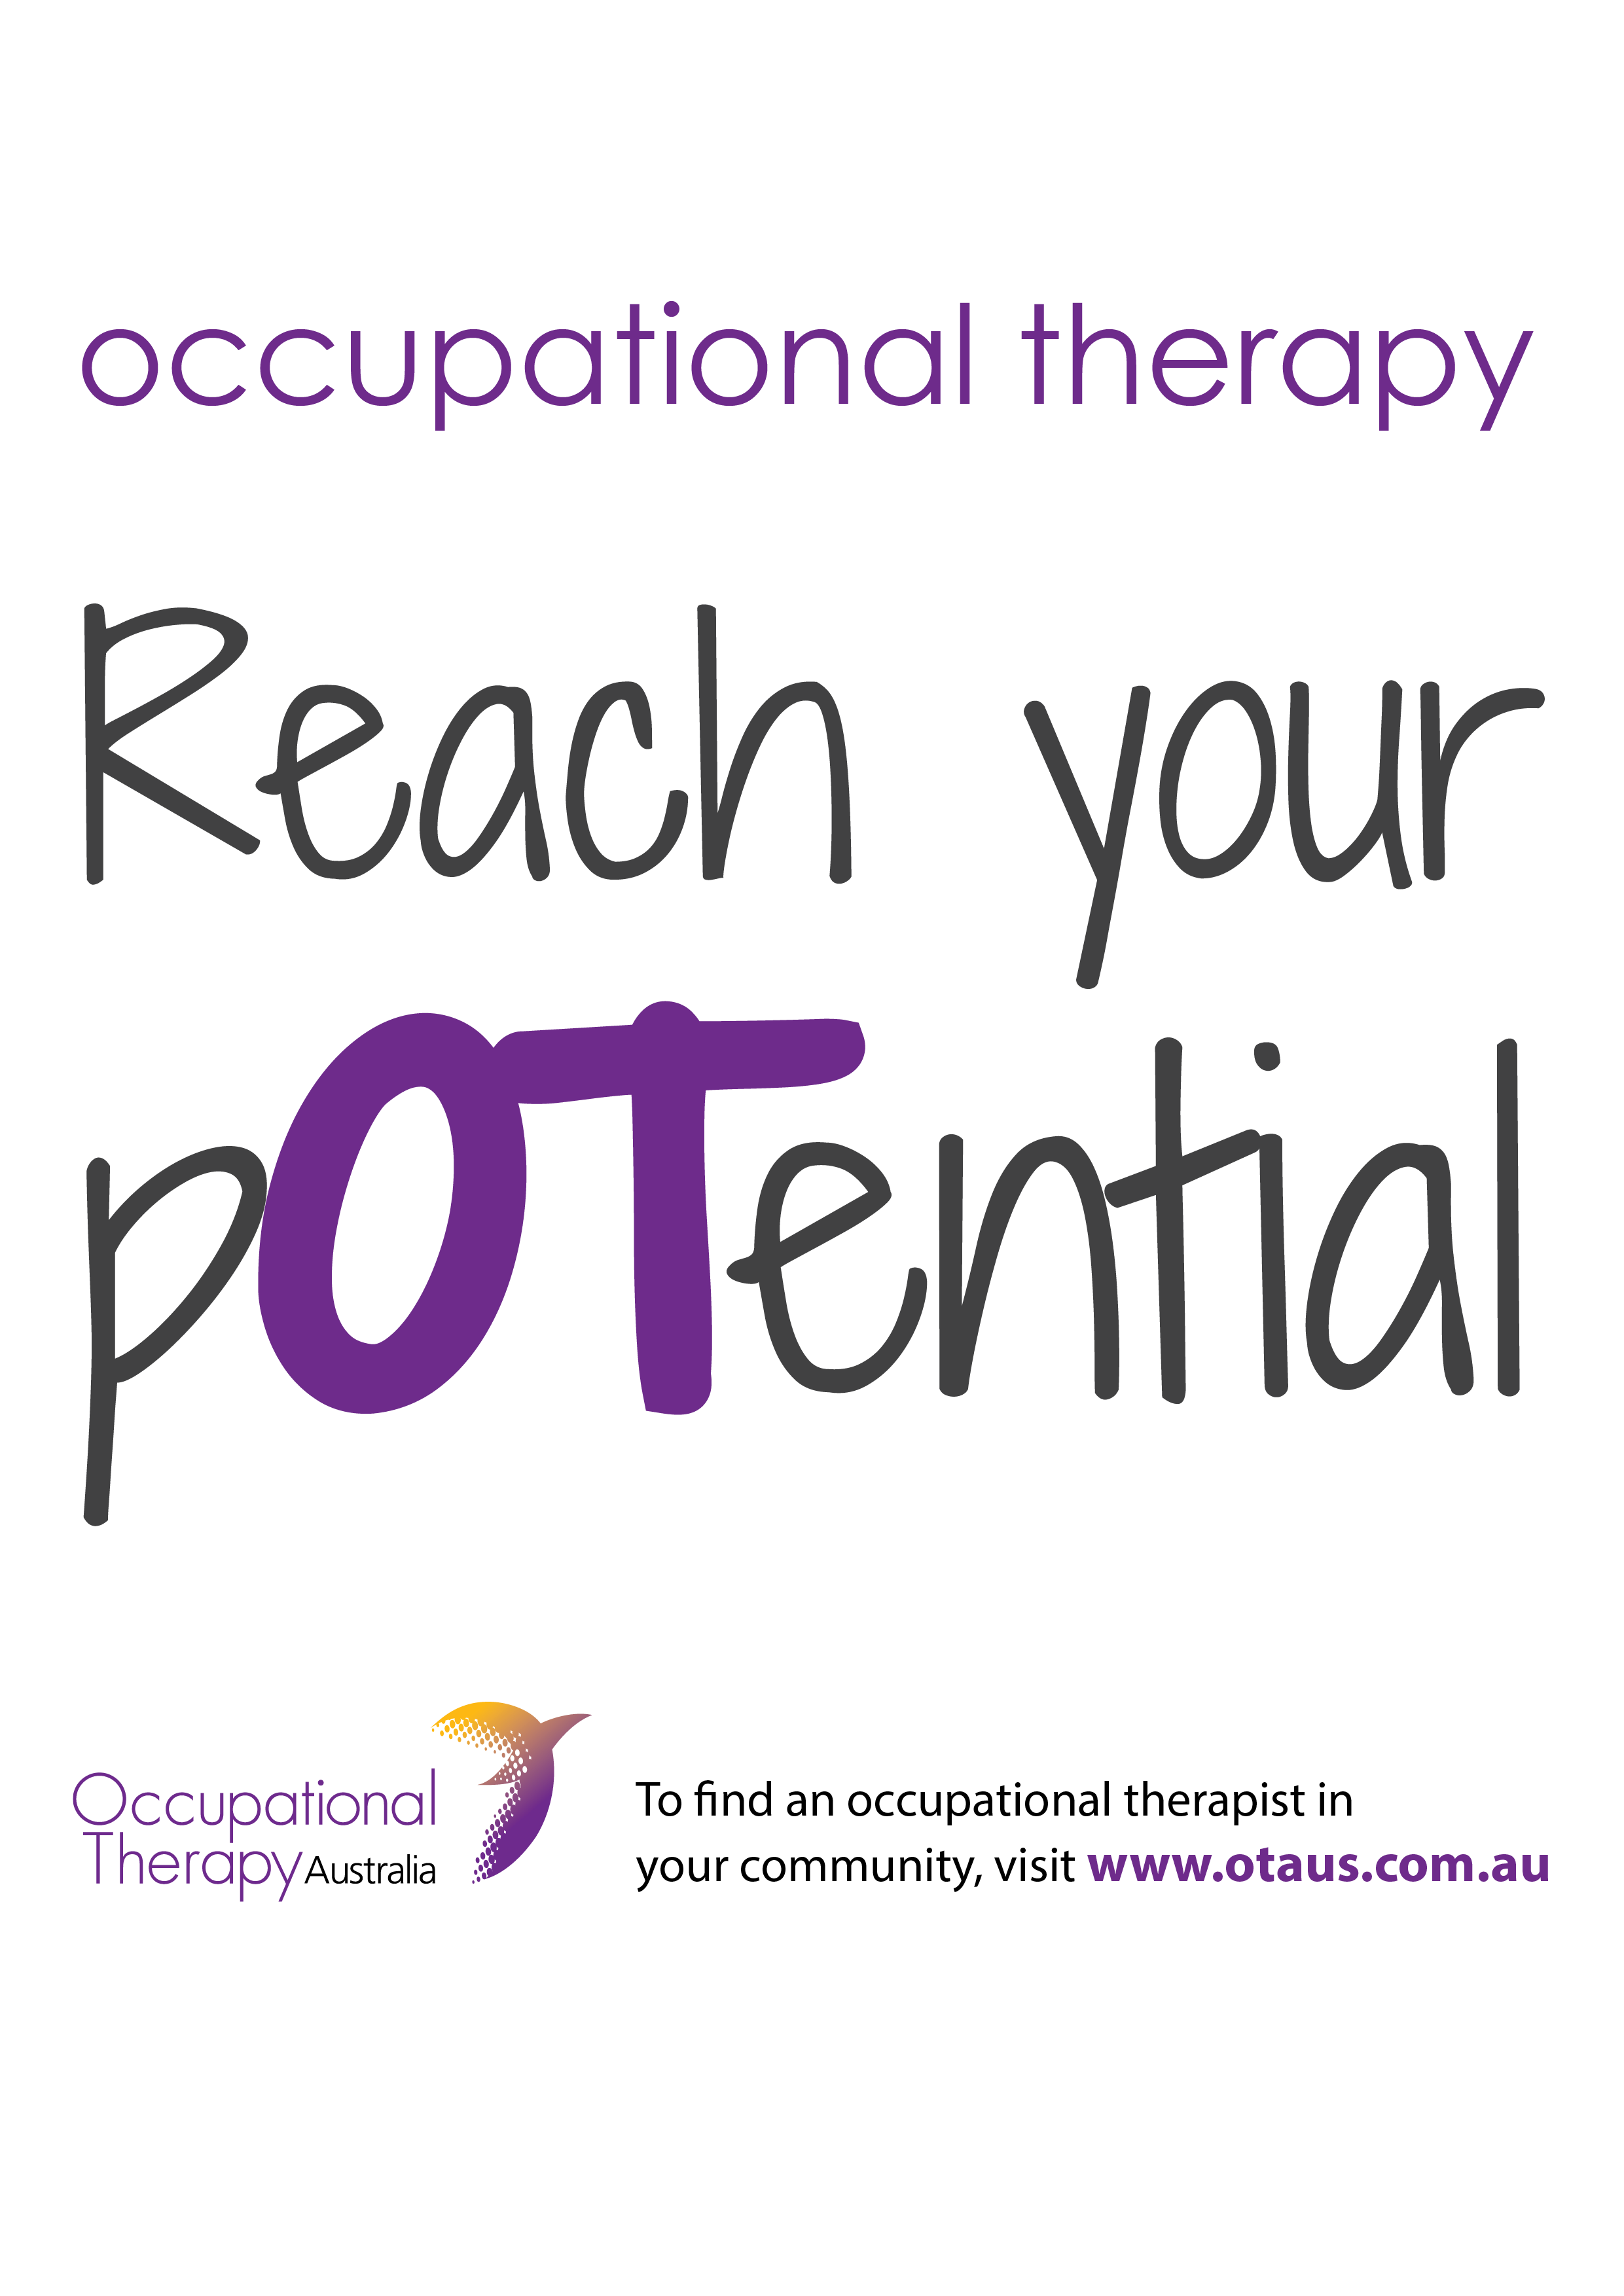 1c5004d7e2d6085feff8062845dc7193 - How To Get A Masters Degree In Occupational Therapy